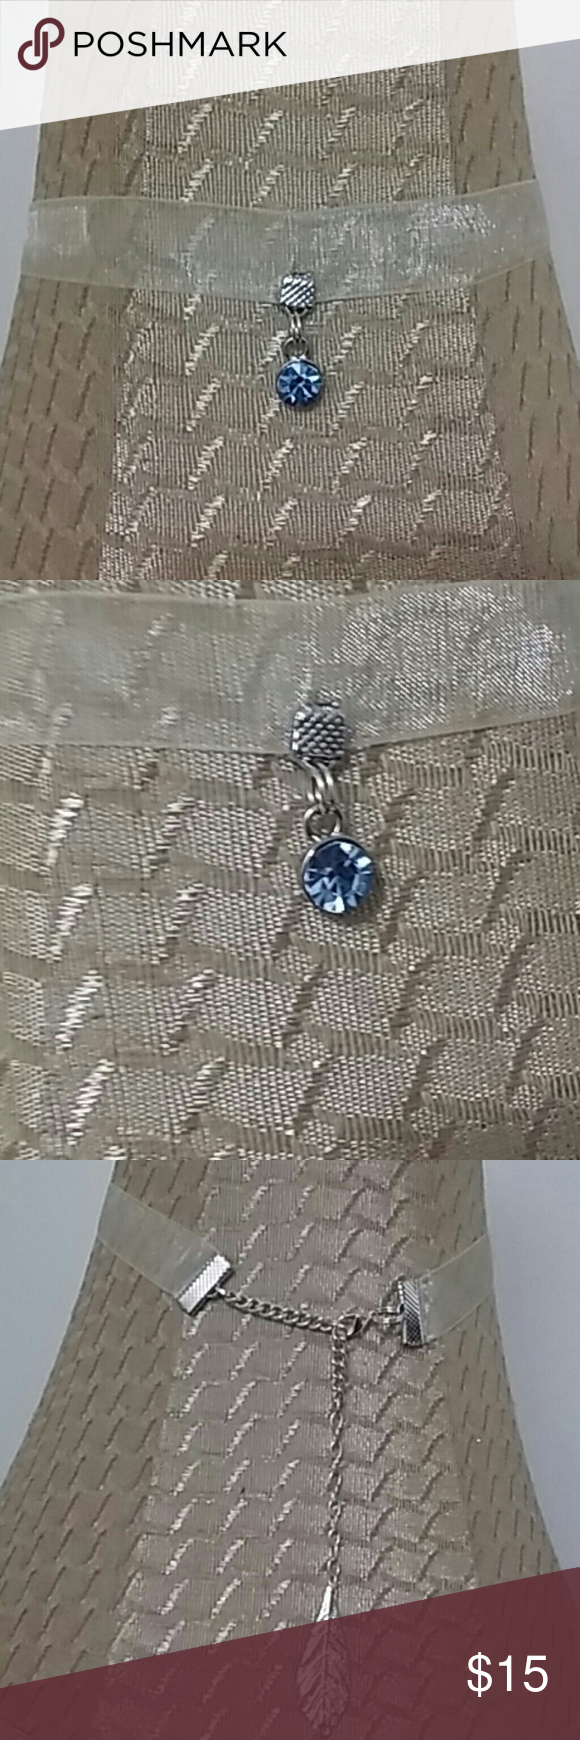 """Sheer Ribbon Choker Simulated London BLUE TOPAZ Pendant. ~ 3"""" inch exstender~Lobster claw clasp. One of a kind. ~FINAL PRICE is $15.00. Poetry in Motion Jewelry Necklaces"""